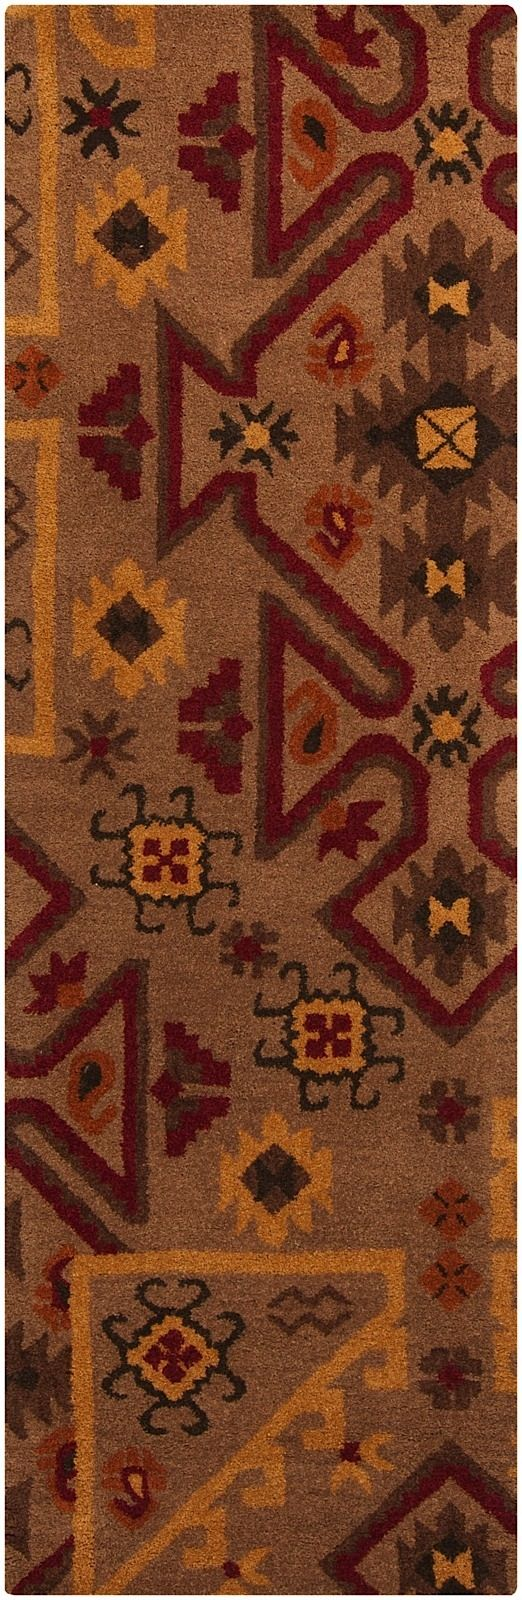 surya arizona southwestern/lodge area rug collection